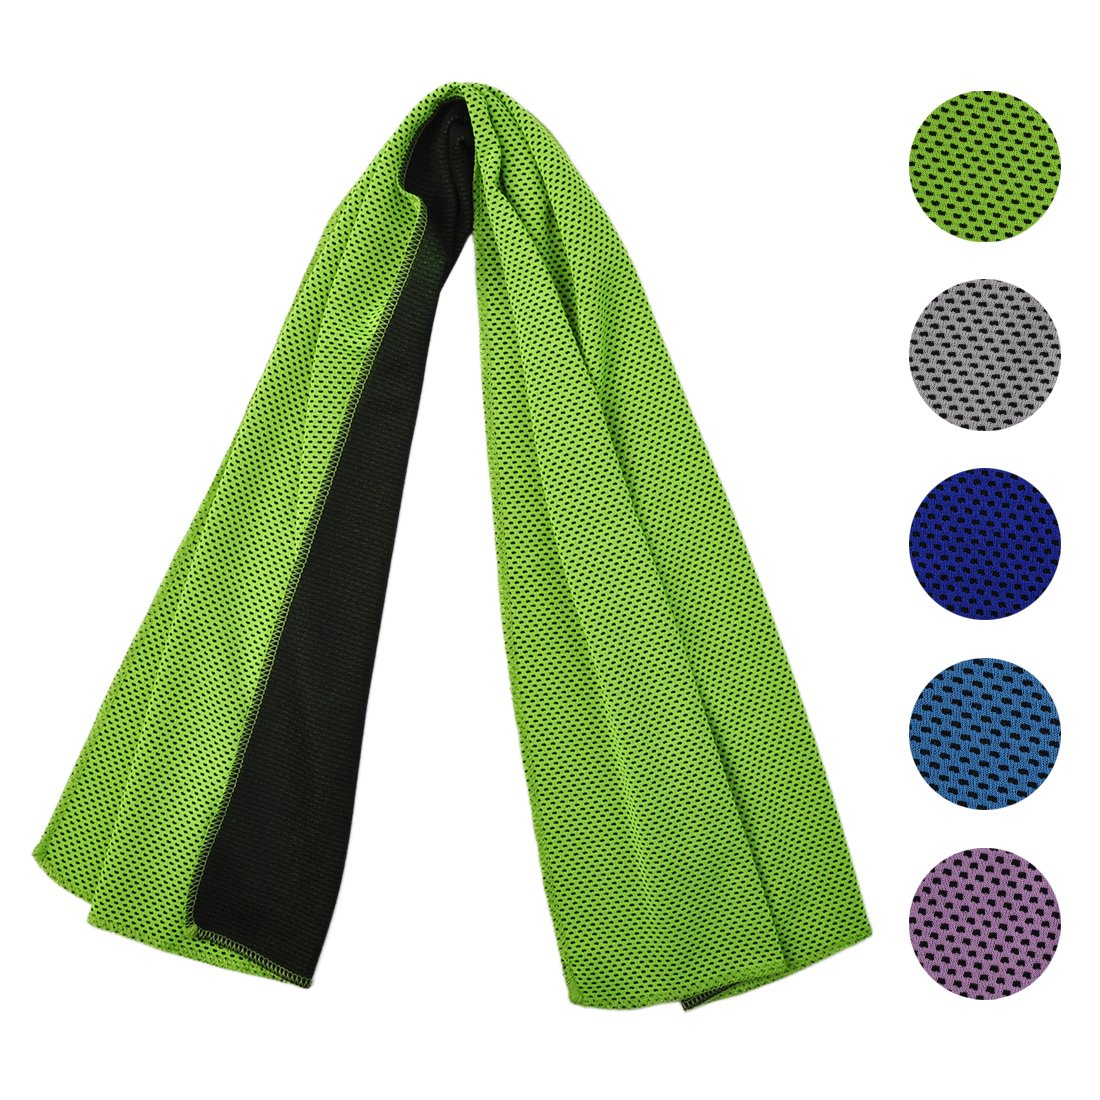 Cooling Towel for Sports, Workout, Fitness, Gym, Yoga, Pilates, Travel, Camping & More, Ice Cold, Camouflage, Multi Colors (BP-Green)